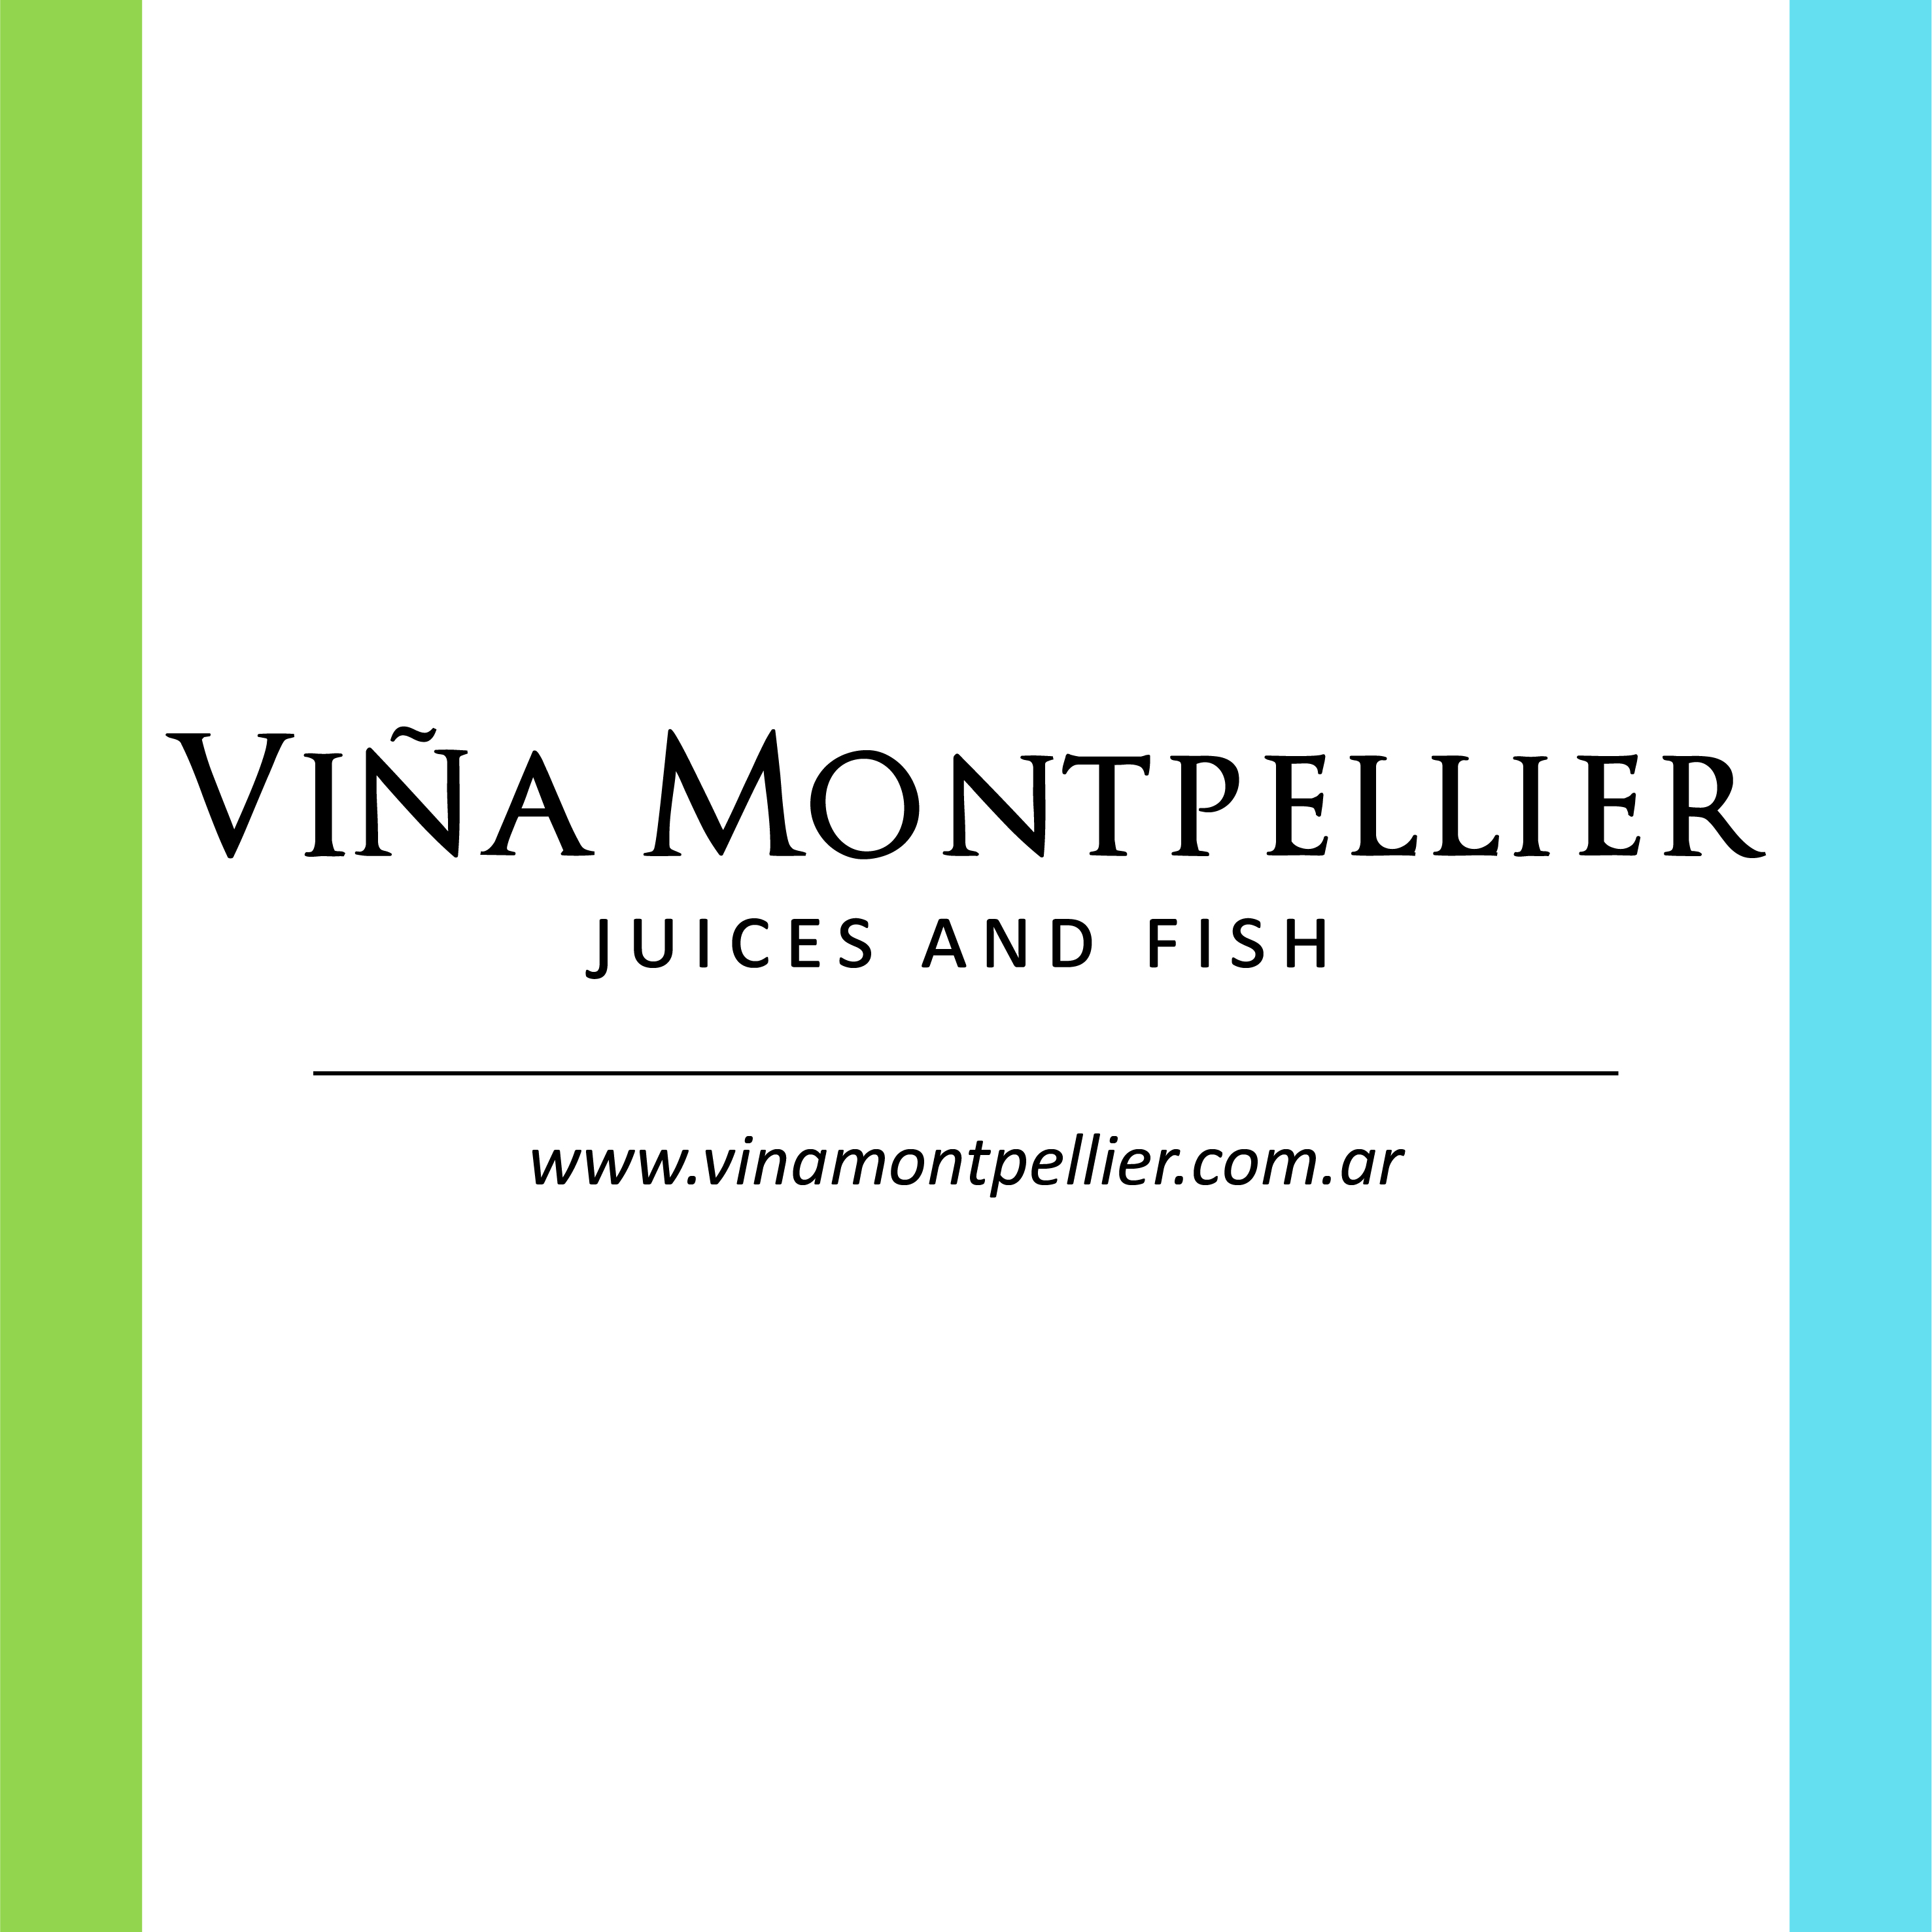 Vina Montpellier S.A.